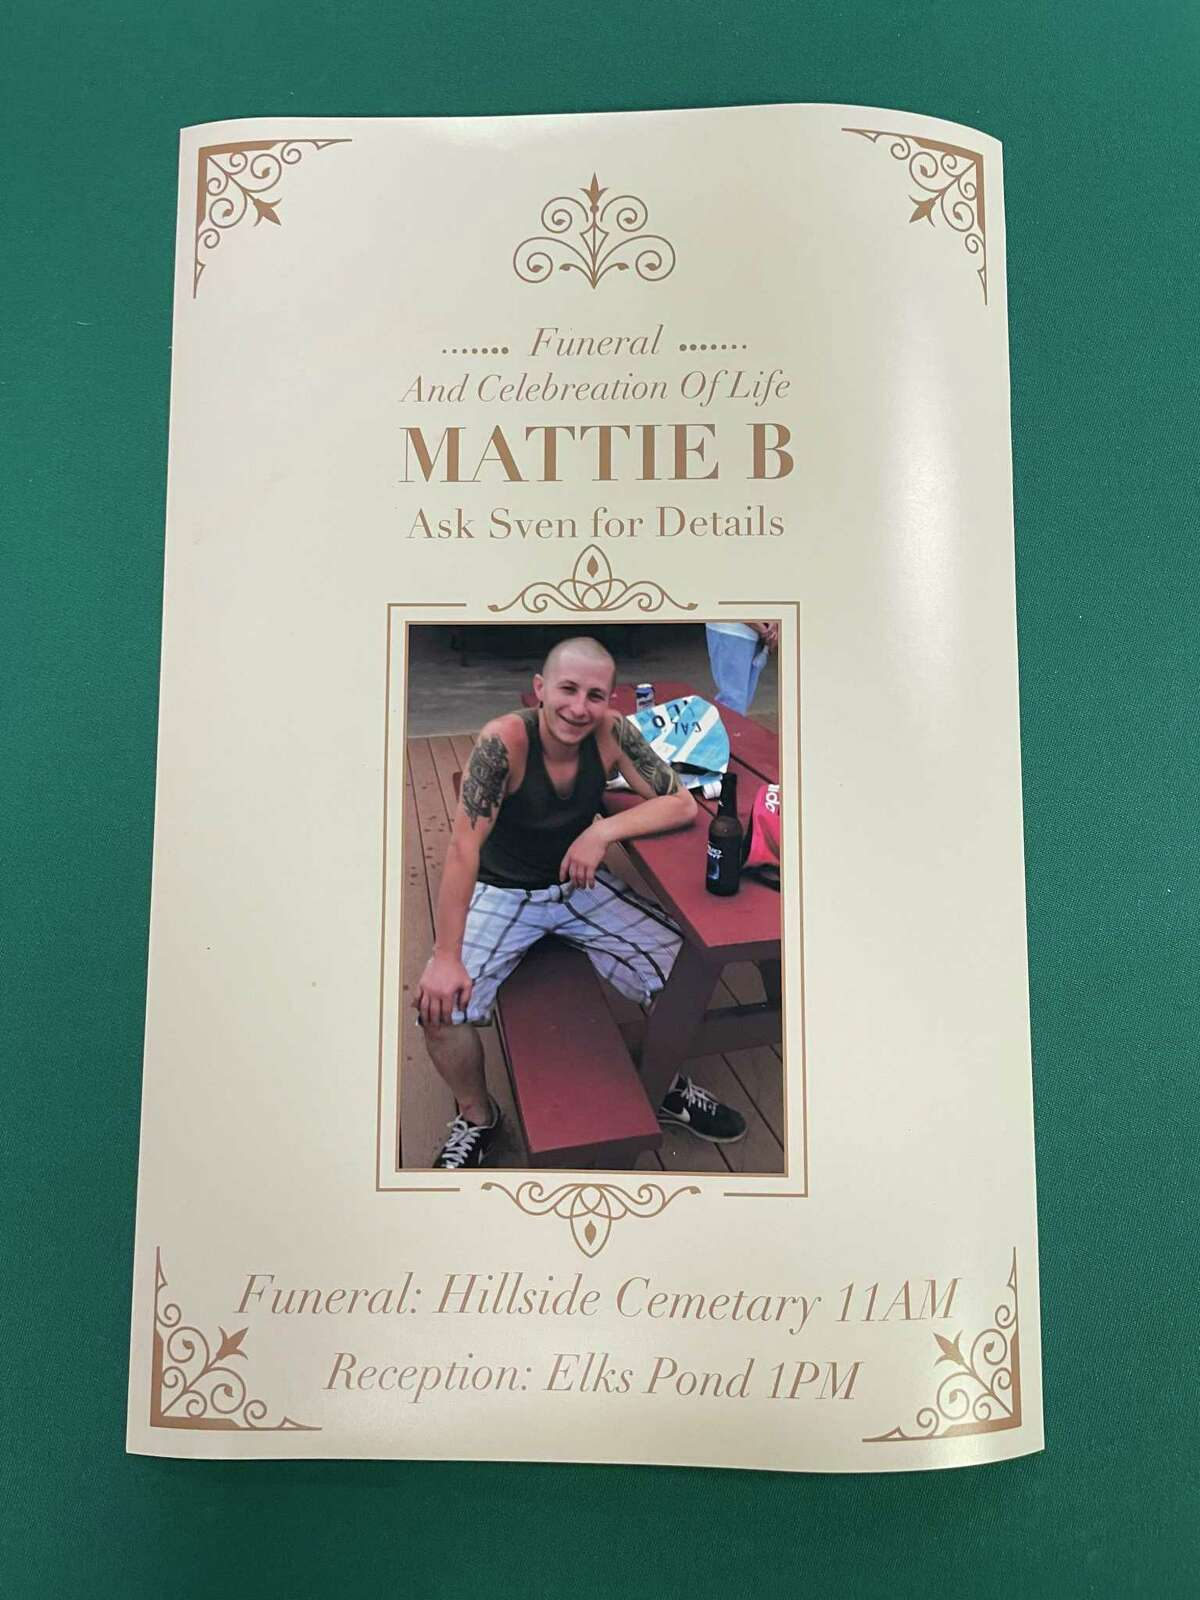 Matthew Bromley's funeral and celebration of life pamphlet.